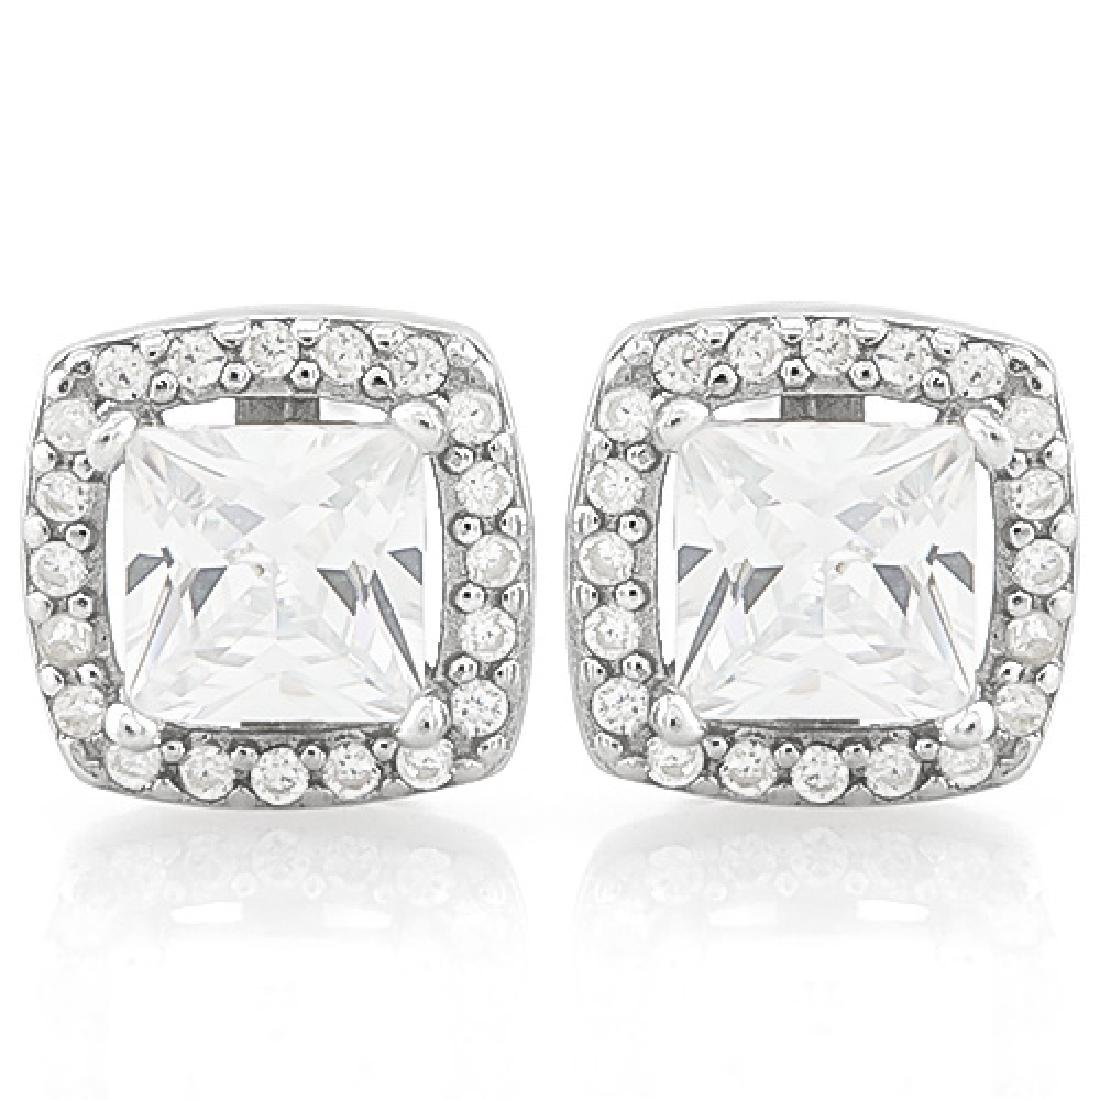 7 CARAT (42 PCS) FLAWLESS CREATED DIAMOND 925 STERLING